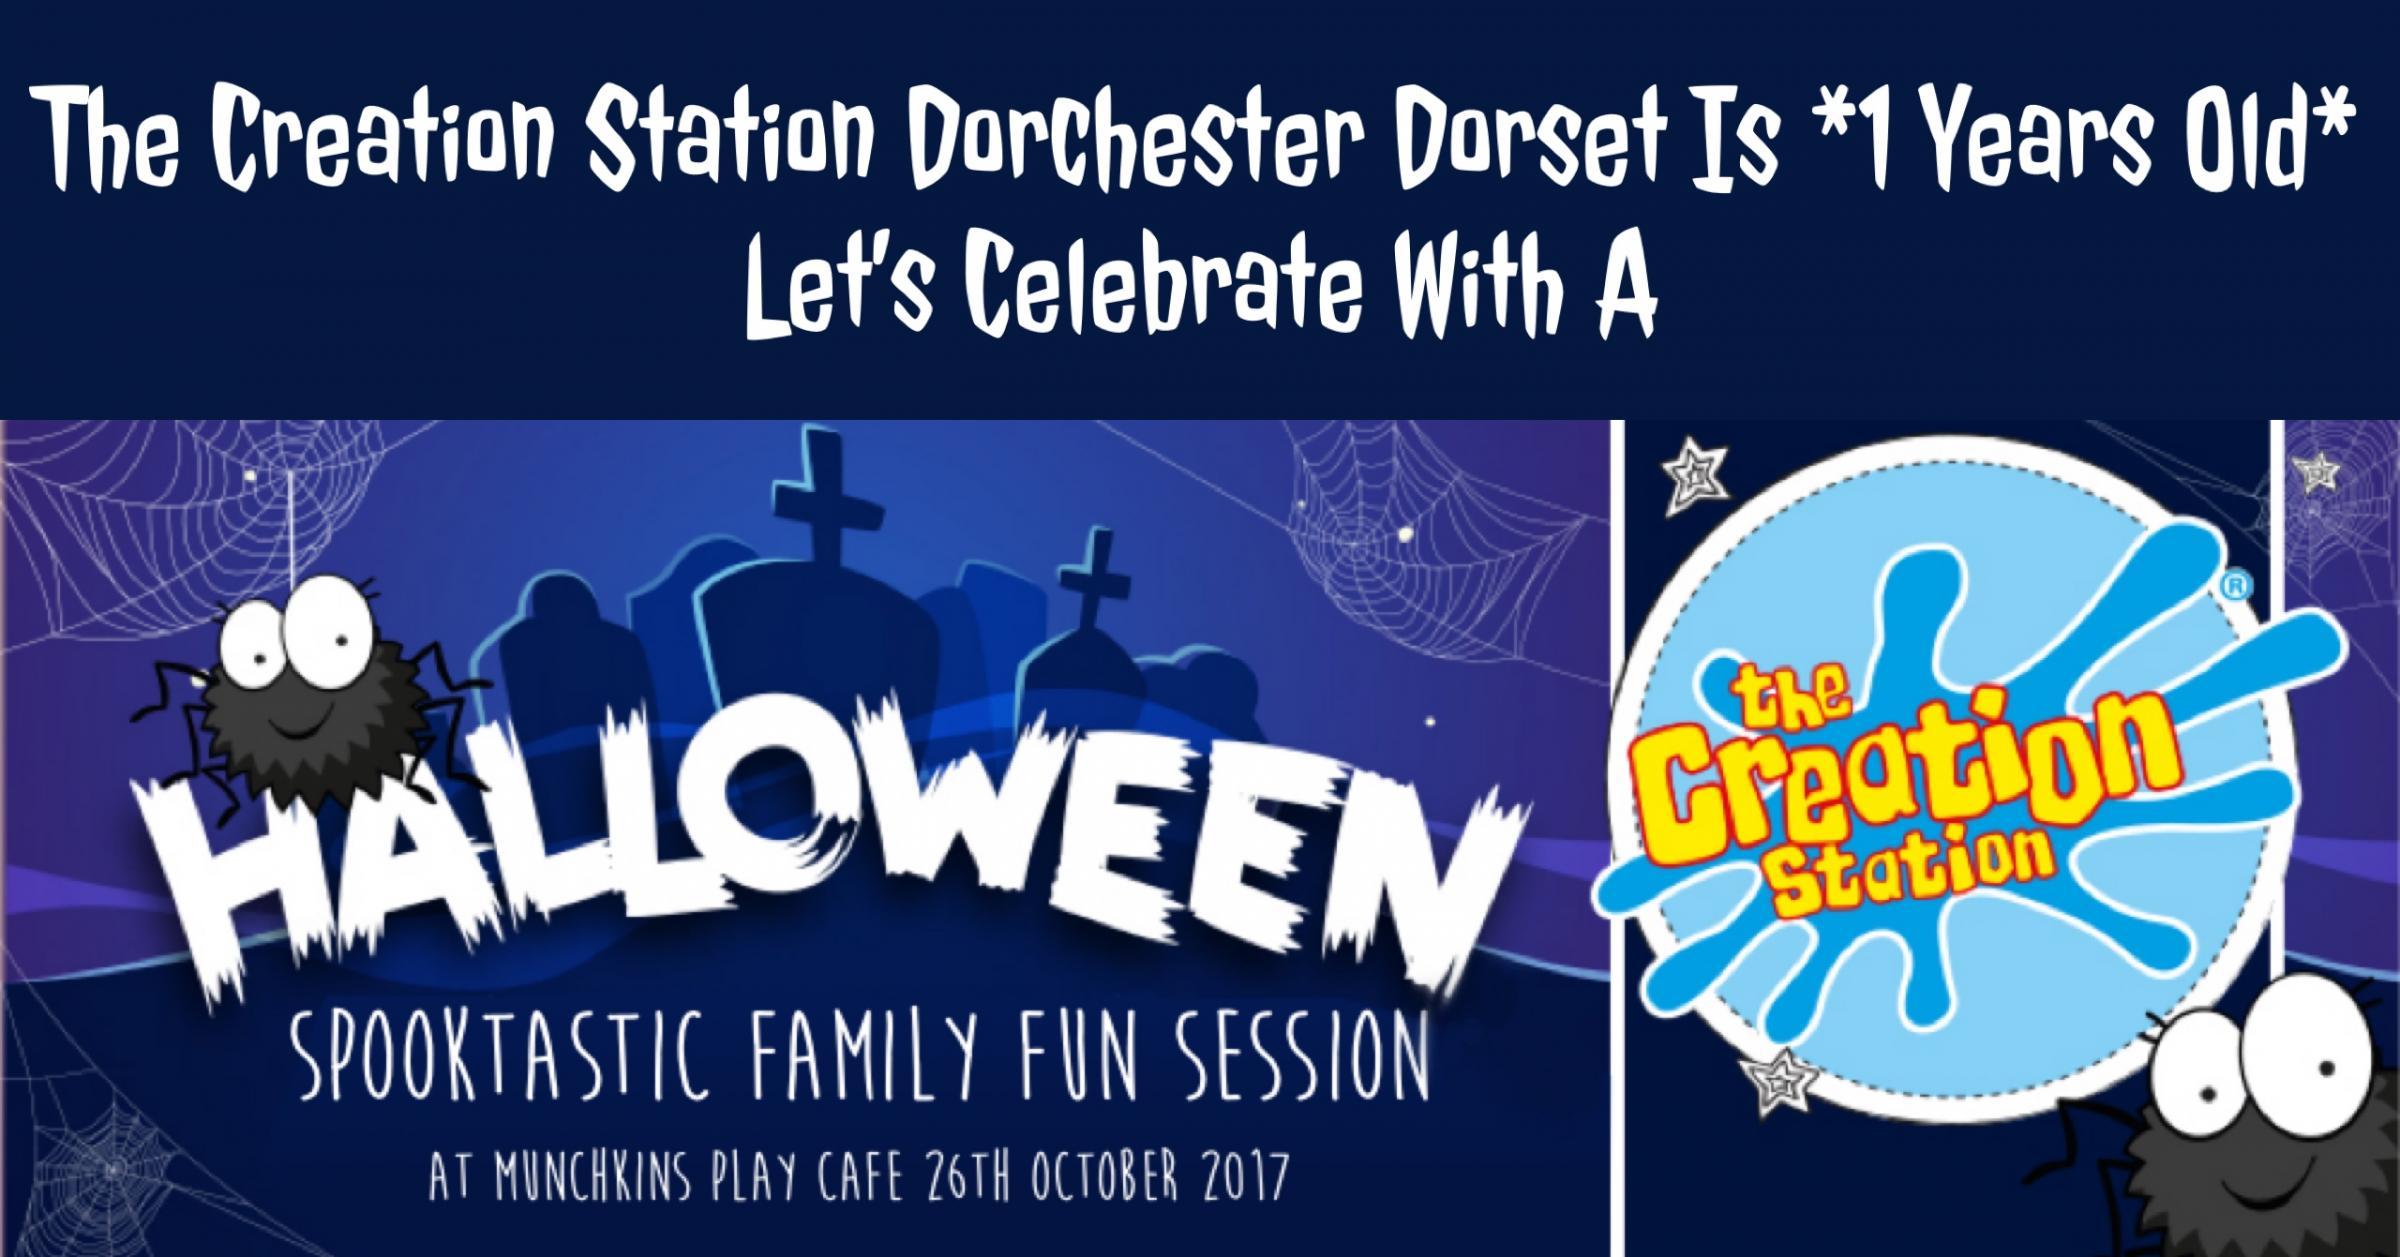 Spooktastic Family Fun Session